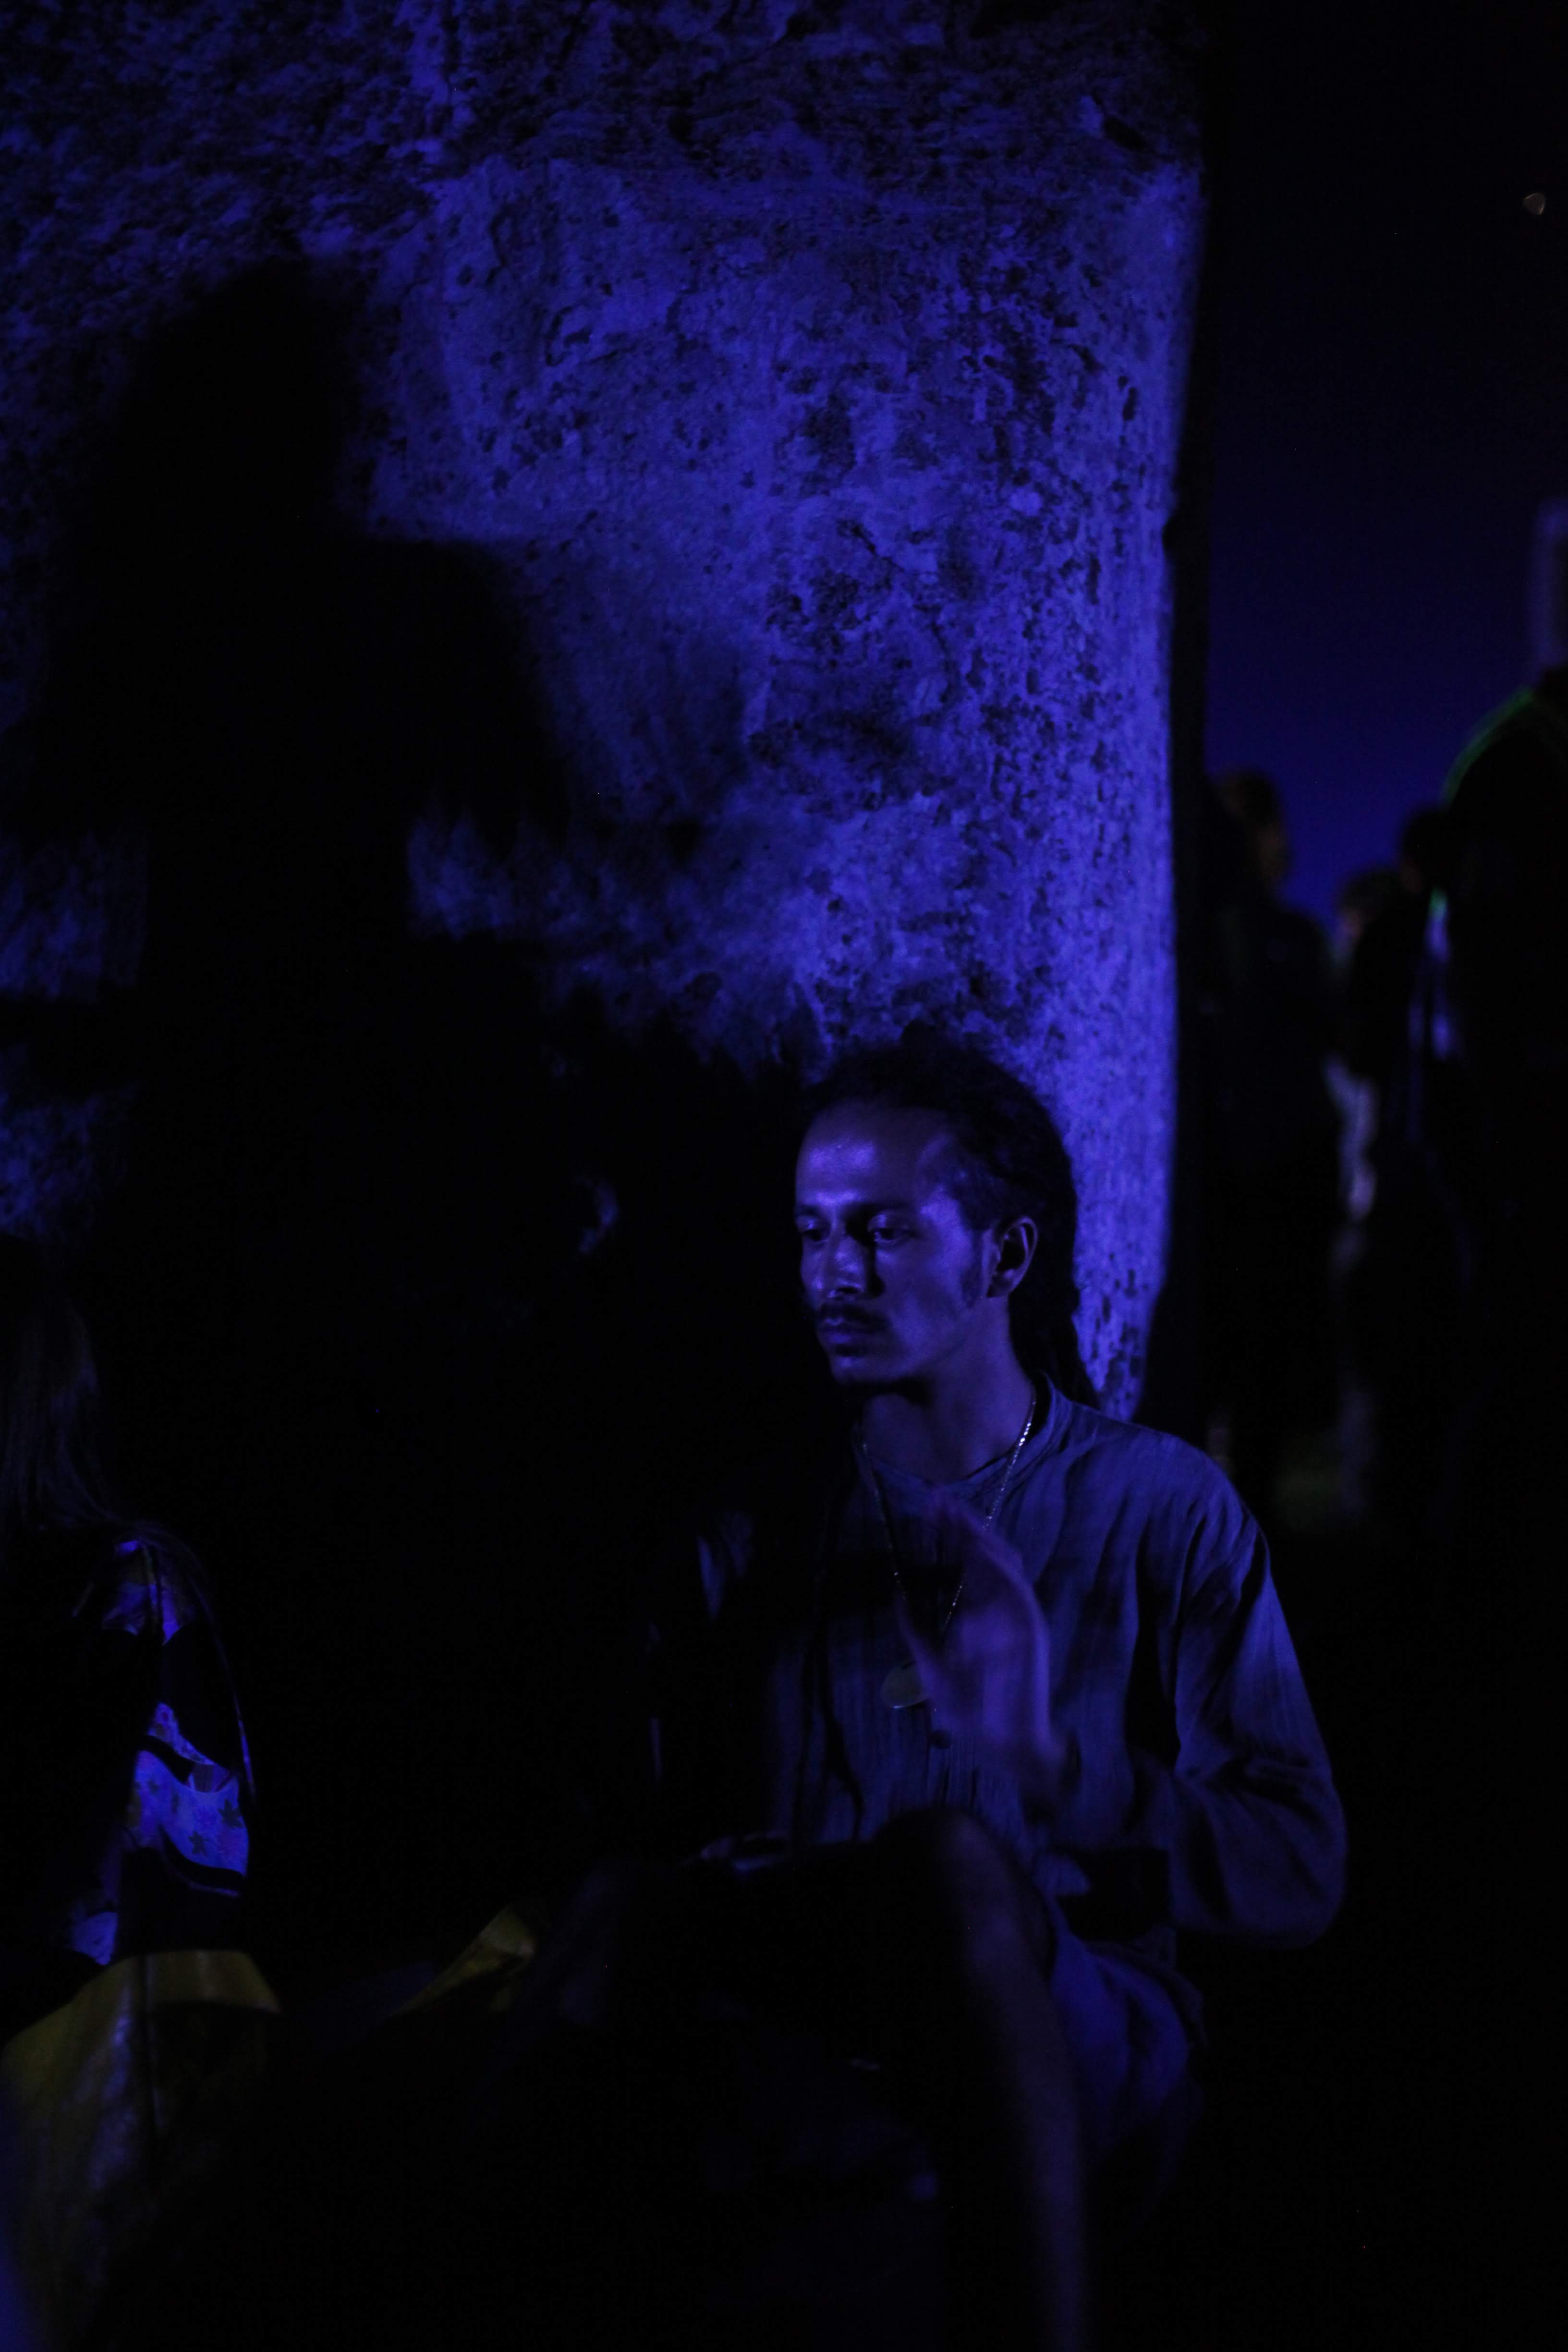 ana paganini stonehenge Summer and Winter Solstices the south west collective of photography man stood against tree in blue light